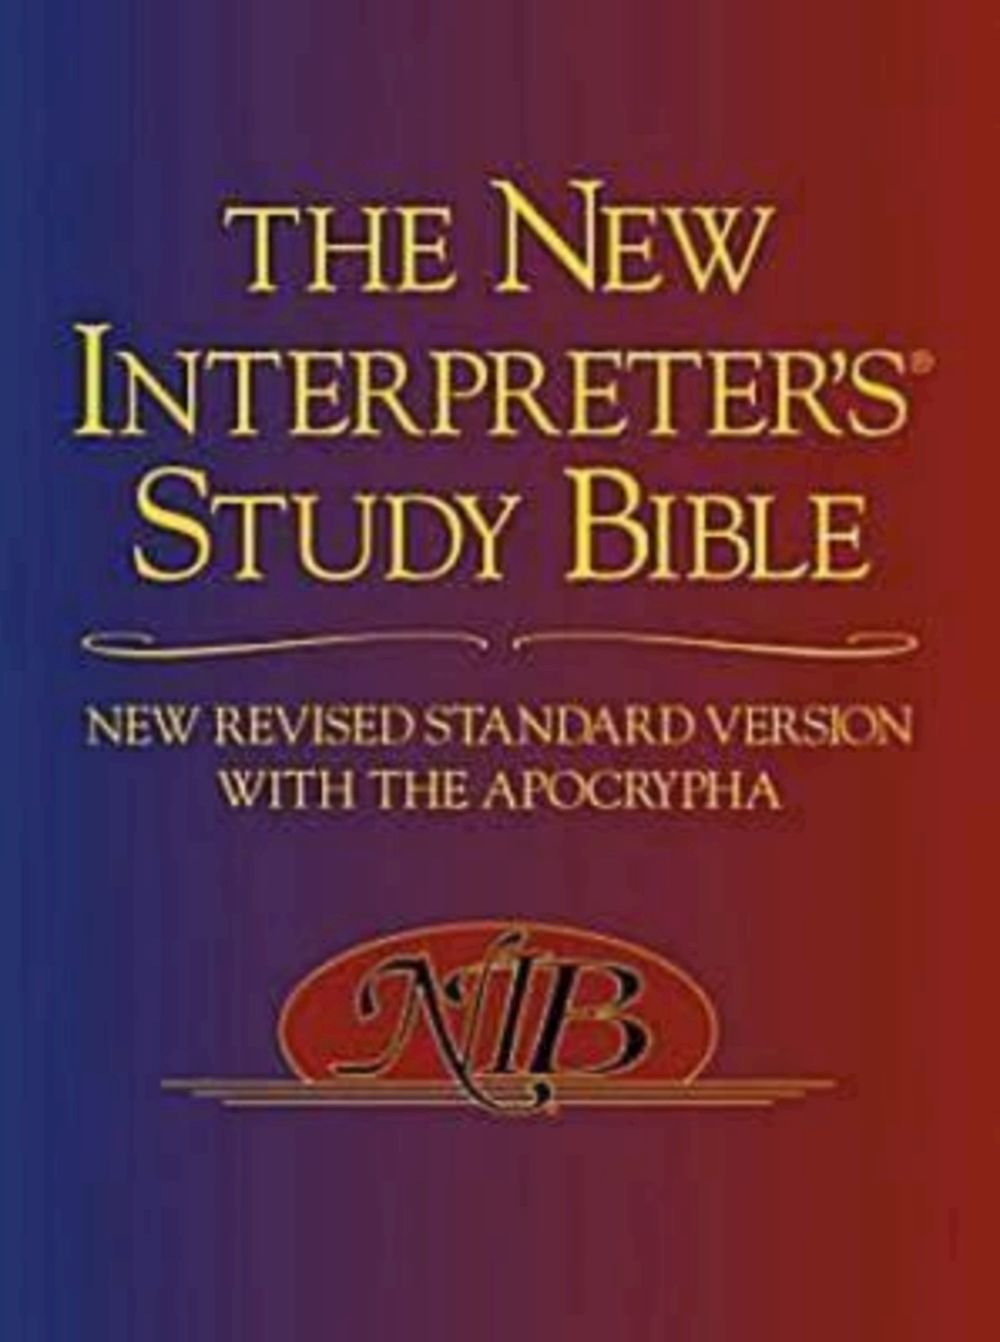 The New Interpreter's Study Bible: New Revised Standard Version With the Apocrypha pdf